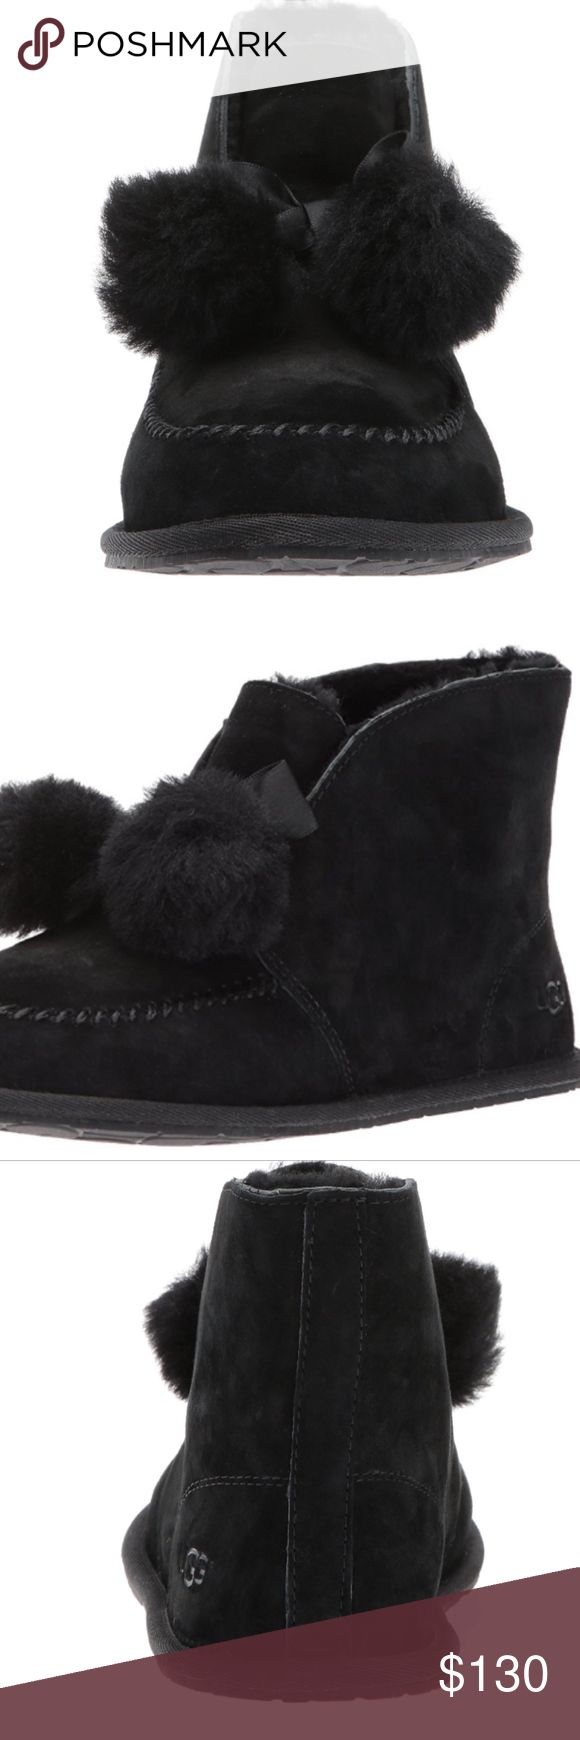 UGG Women's Kallen Slouch Boot Slipper with water resistant suede and sheepskin pom poms UGG Shoes Ankle Boots & Booties